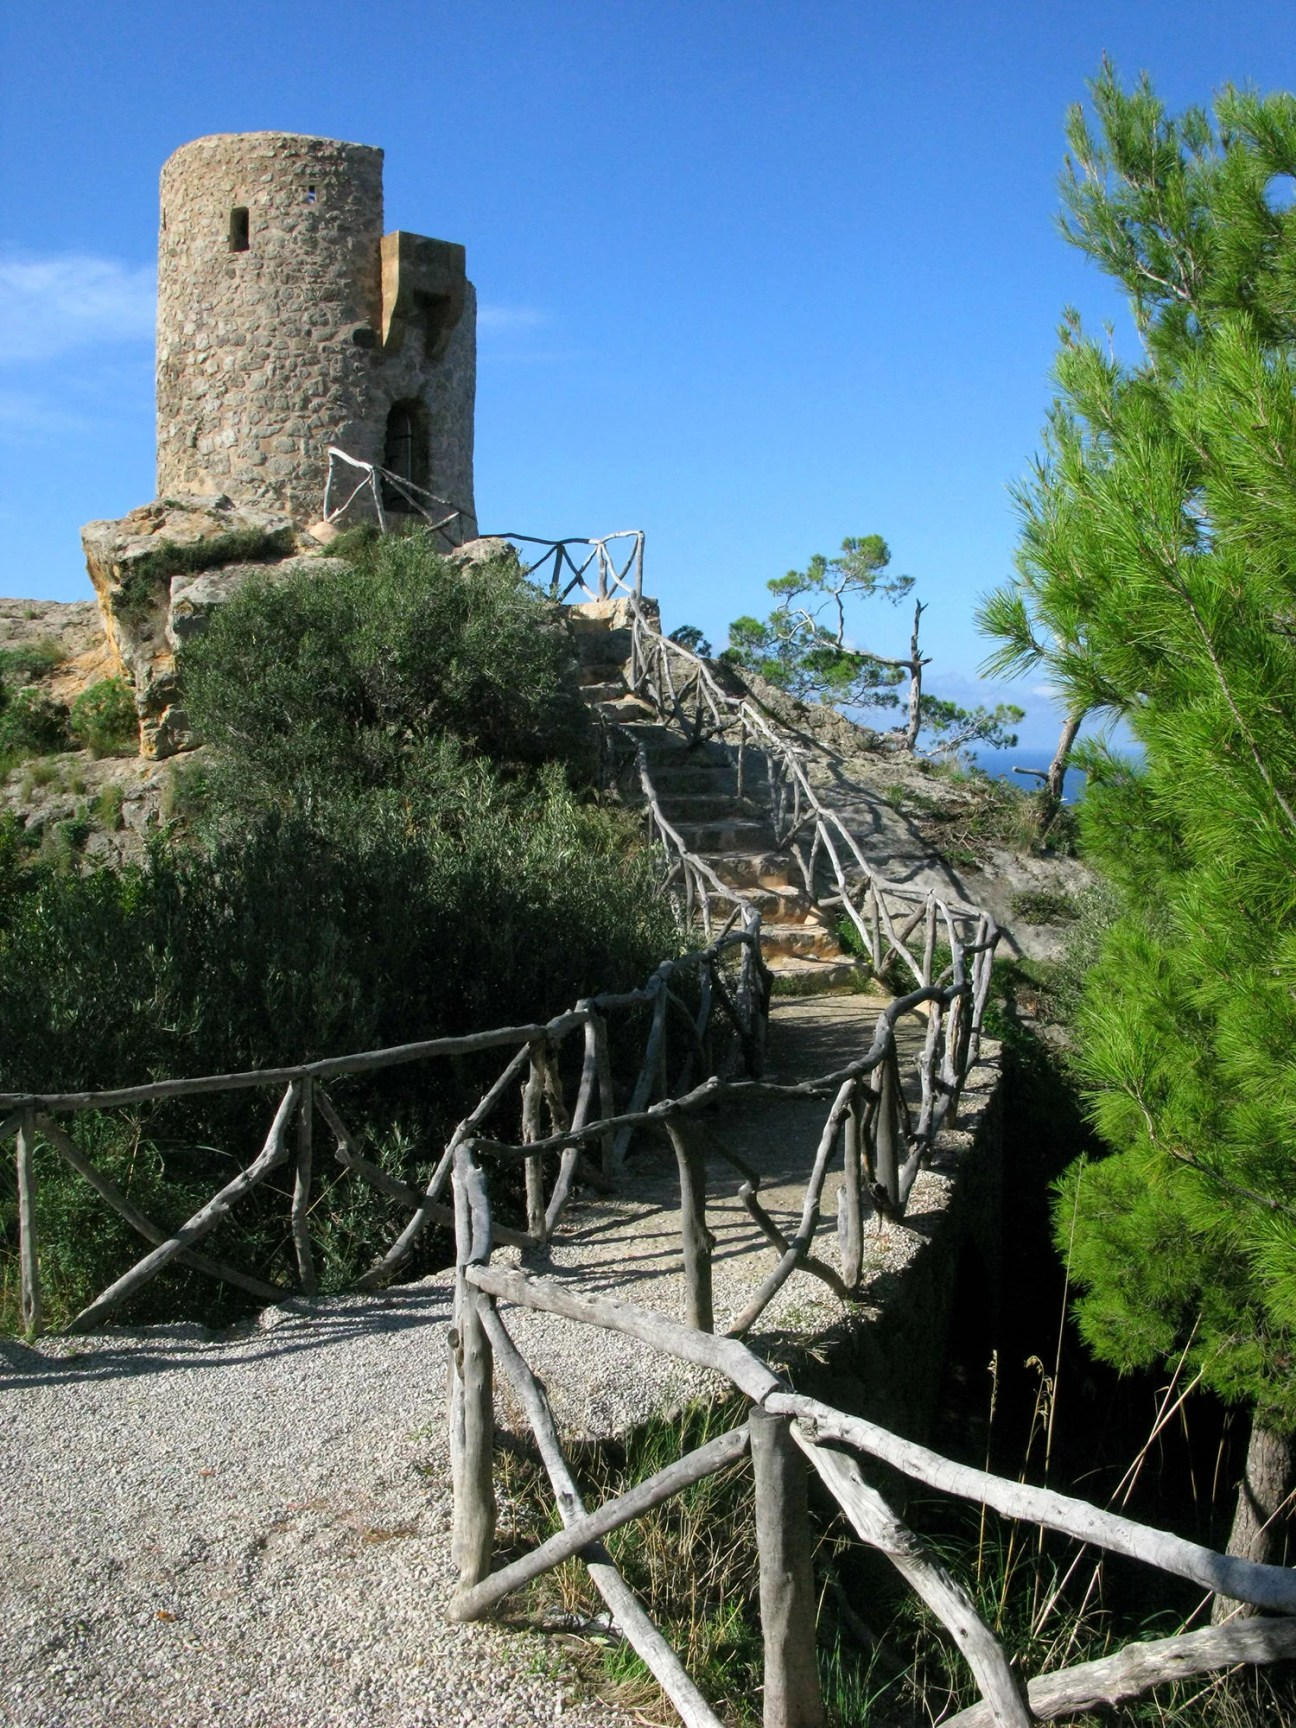 Torre del Verger is an old watch tower from the pirate days of Mallorca